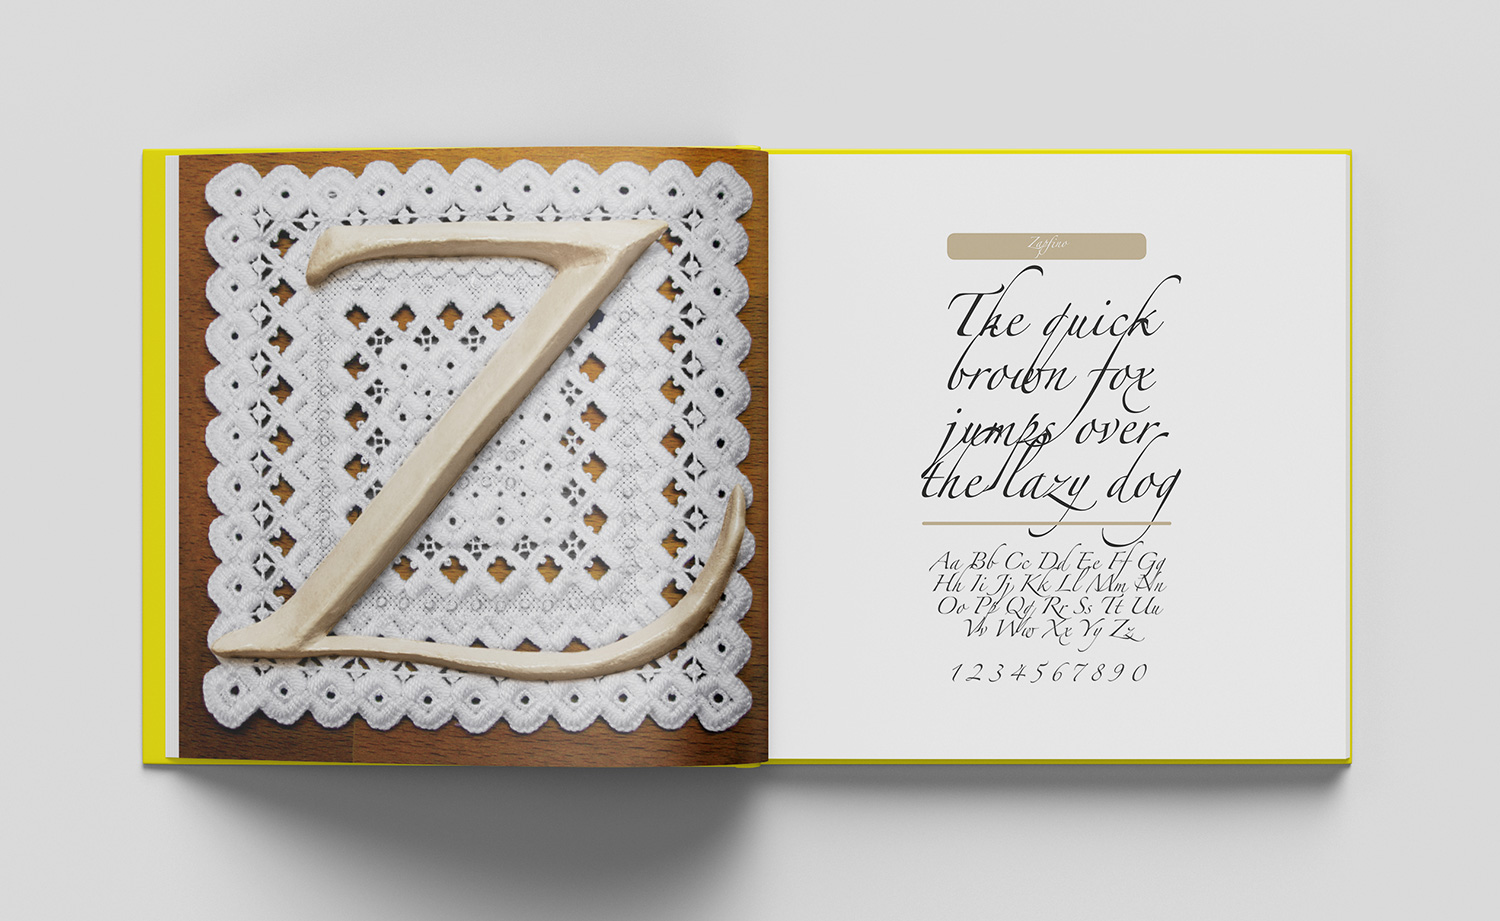 ABC of typography book spread letter Z made of ceramics on old fashioned cloth